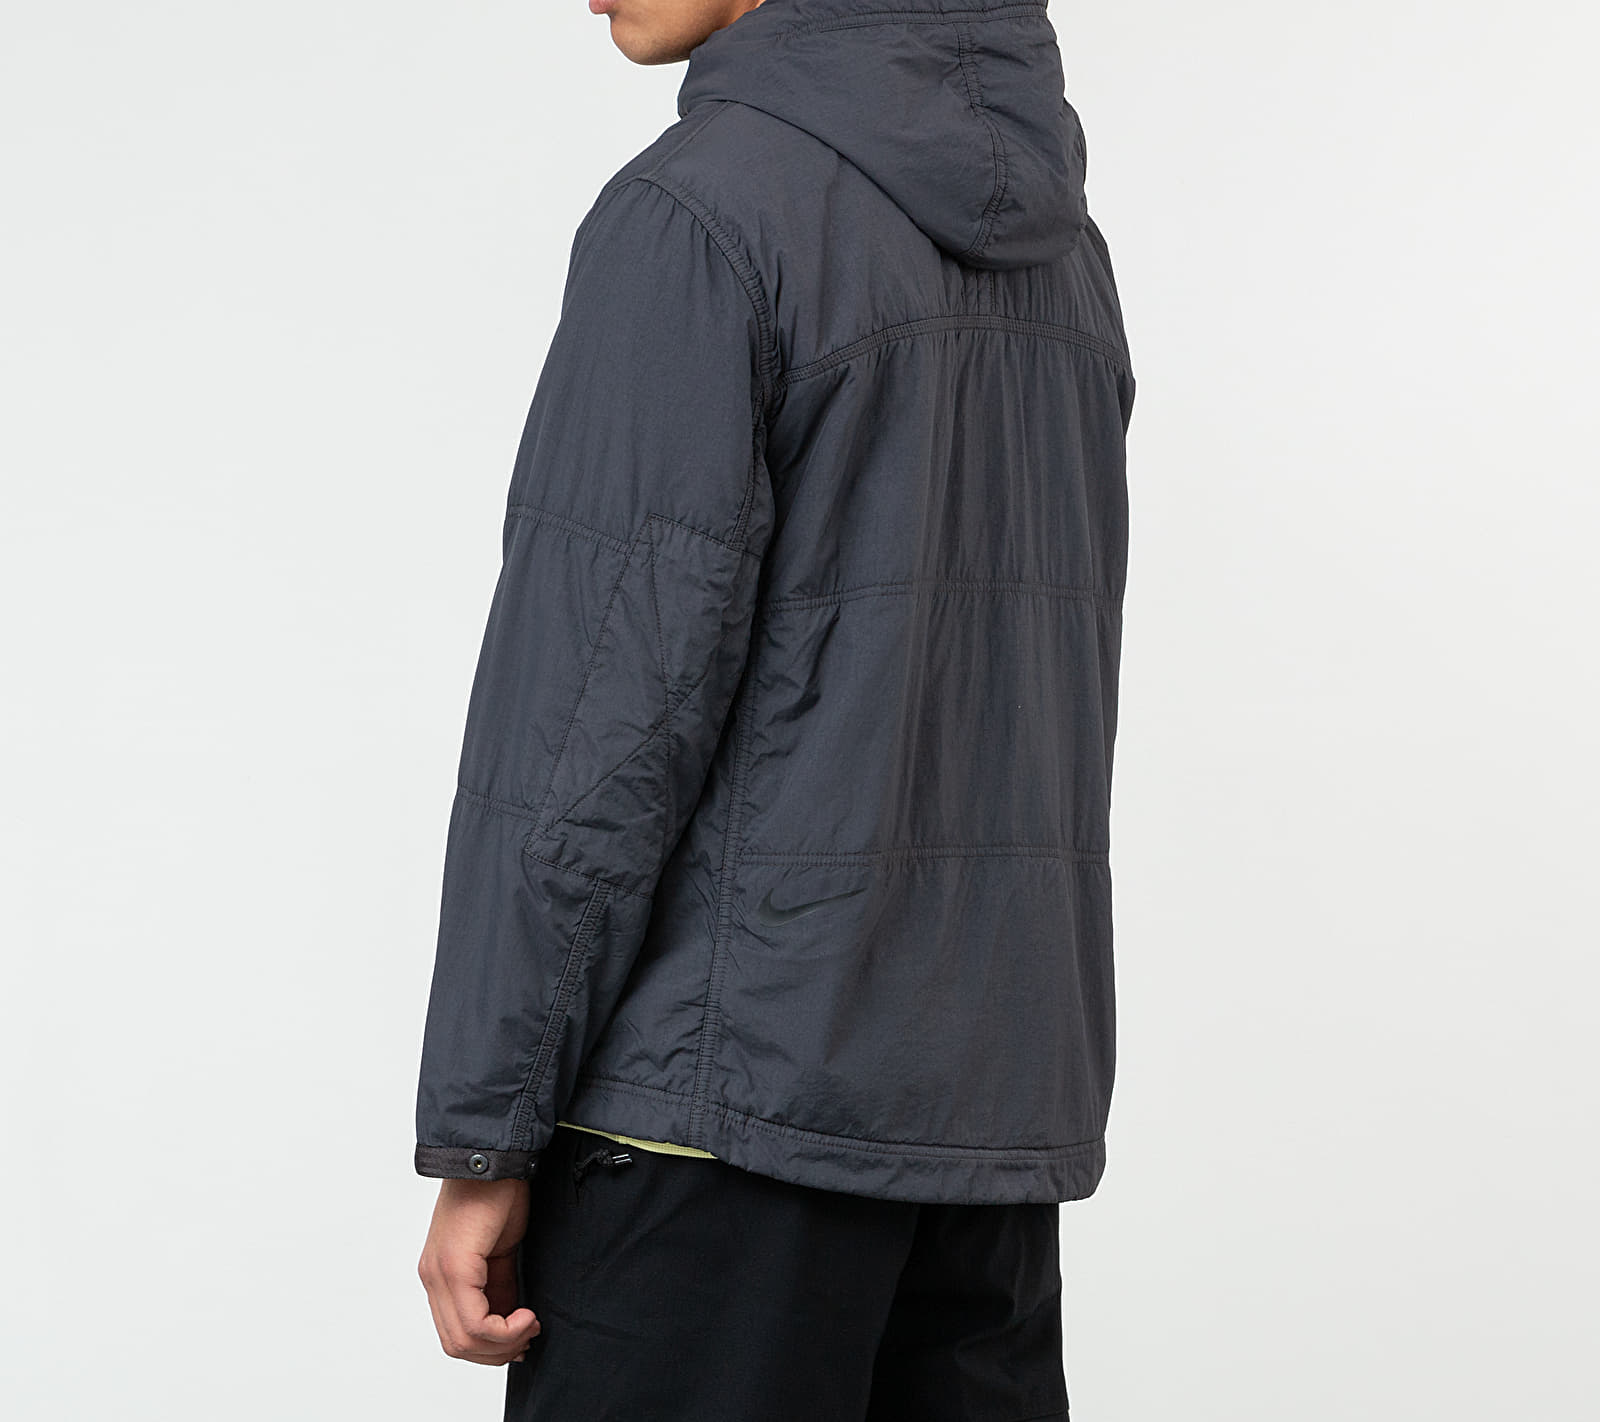 Nike Sportswear Tech Pack Syn Fill Jacket Anthracite/ Black, Gray